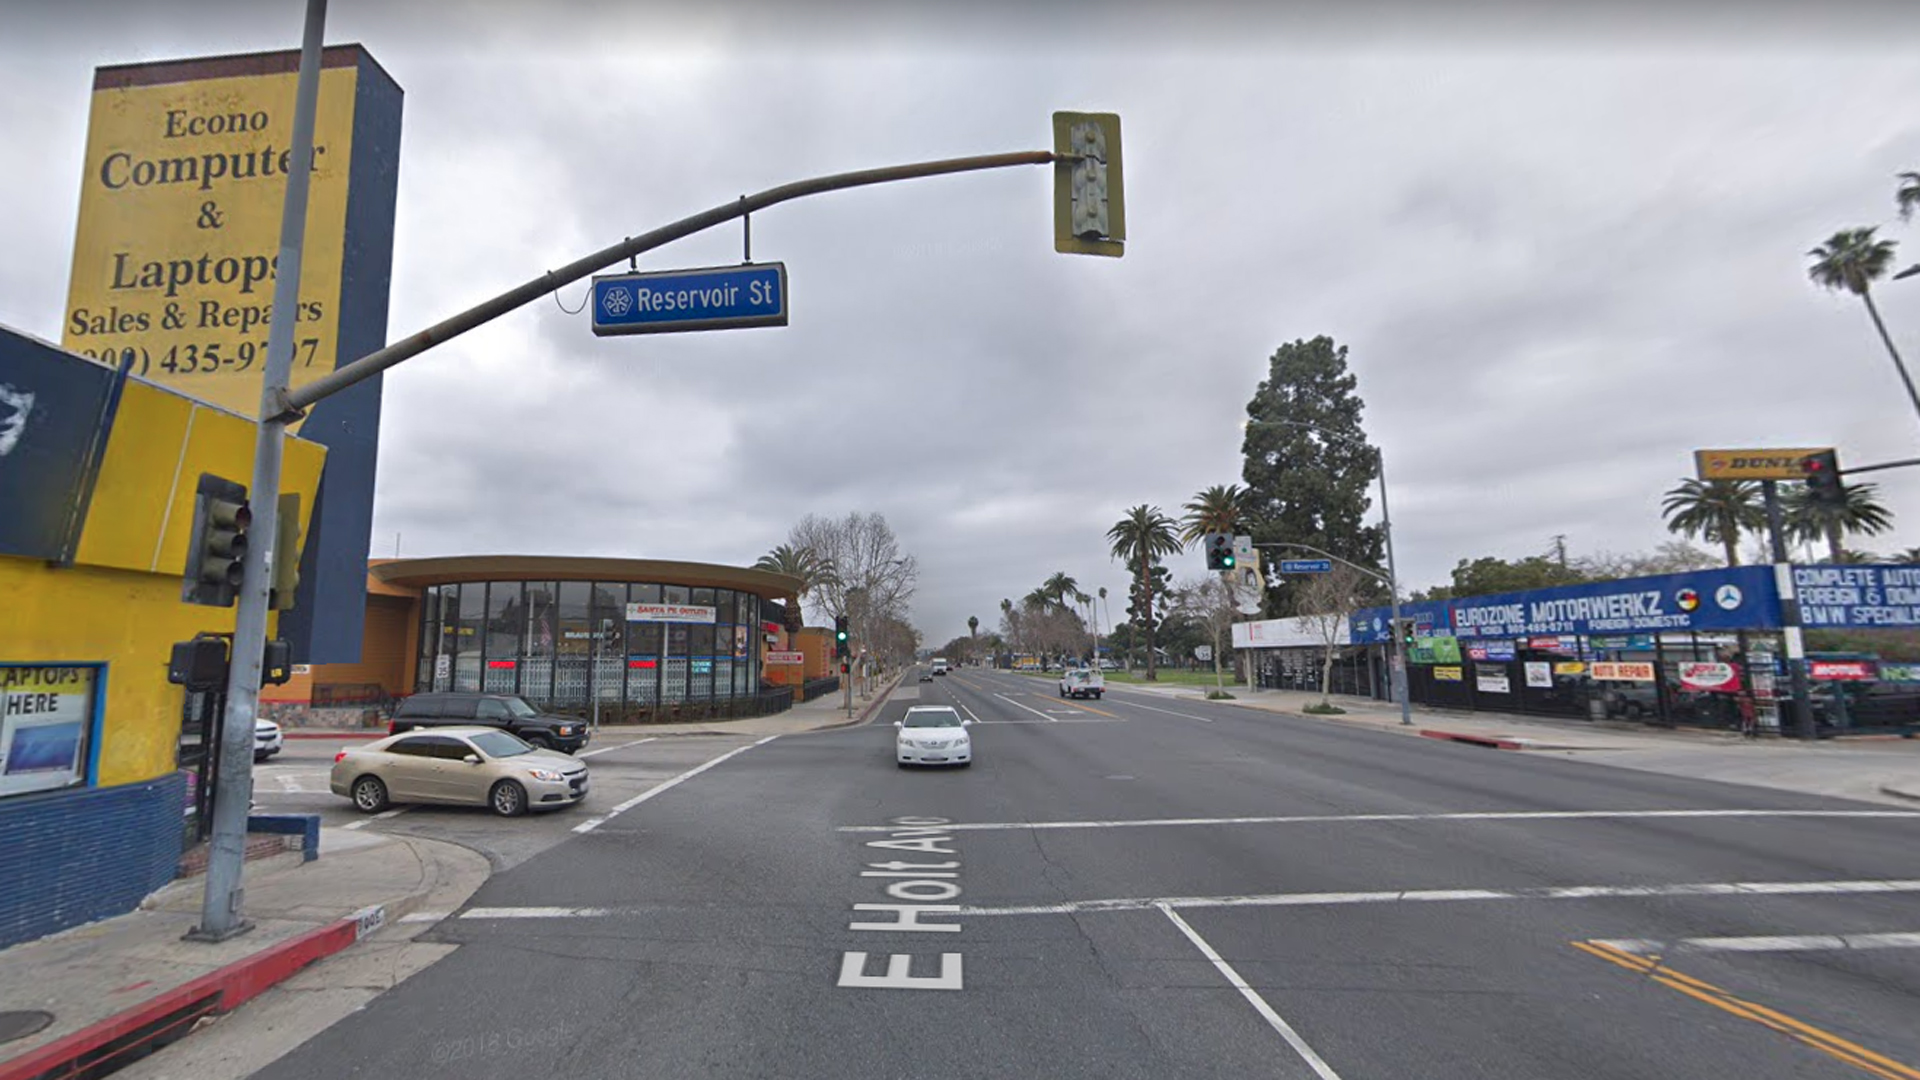 The intersection of Holt Avenue and Reservoir Street in Pomona, as pictured in a Google Street View image in April of 2018.